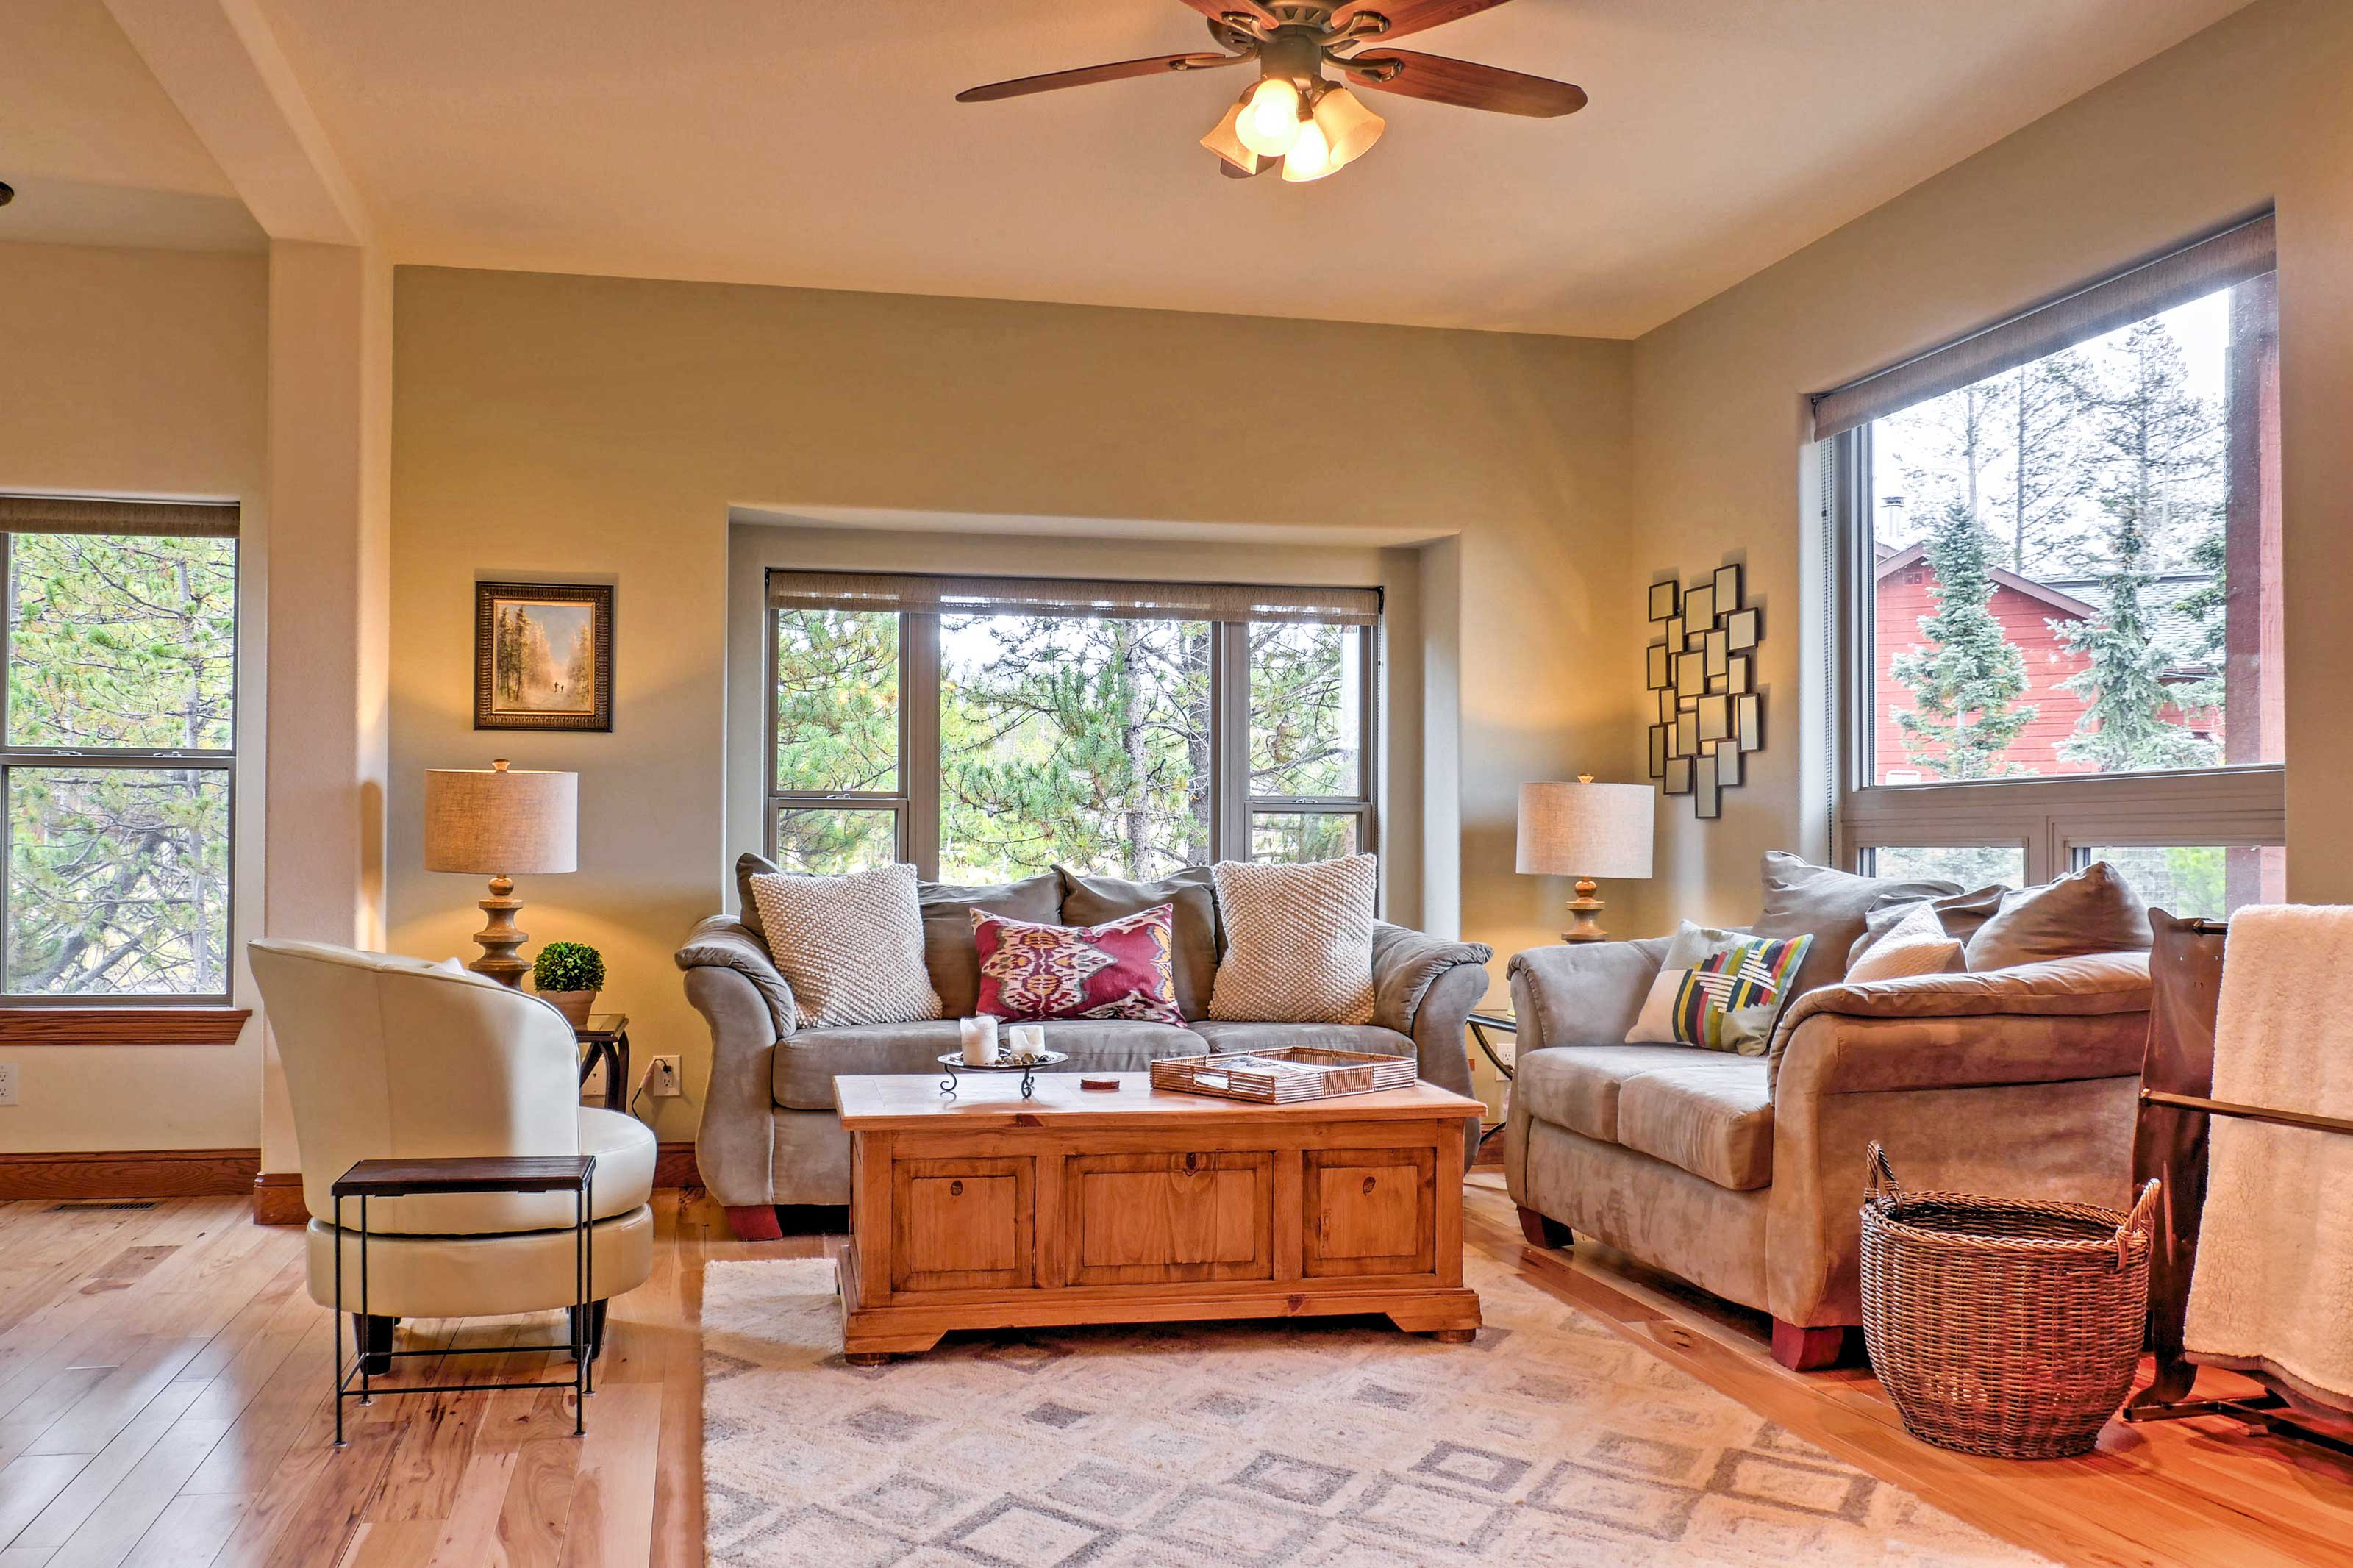 Feel right at home in the bright and airy interior.